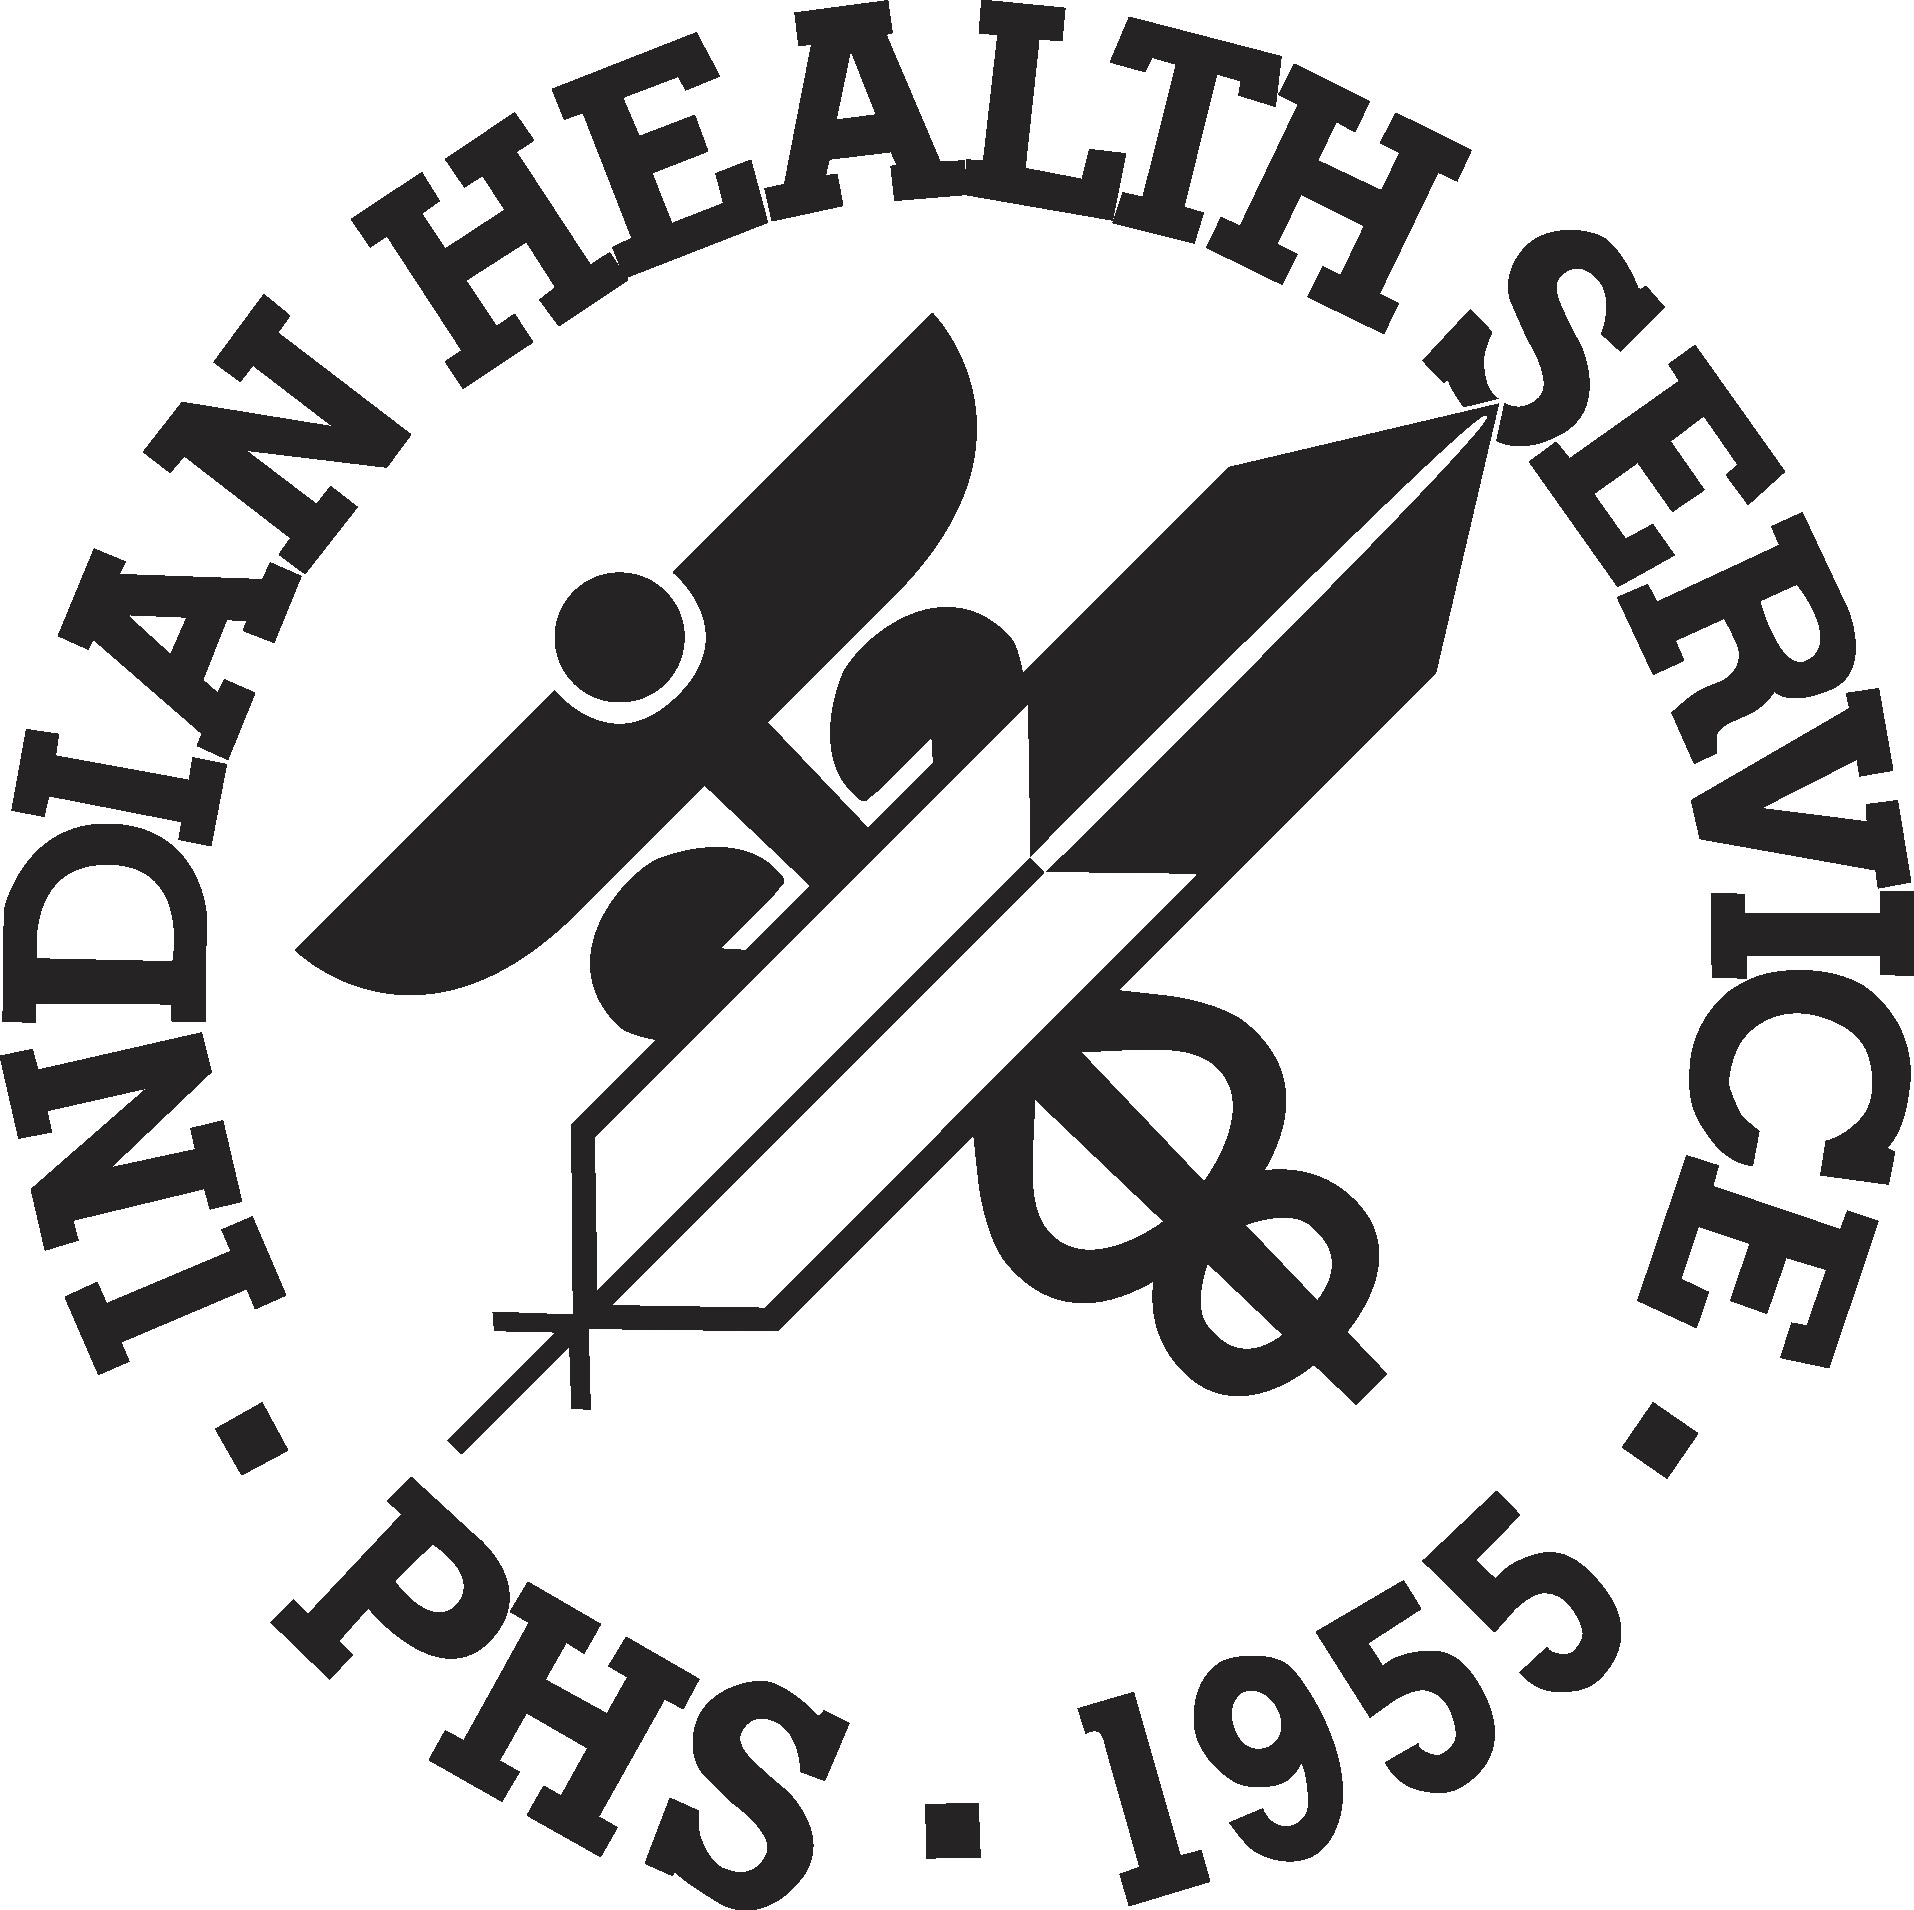 Insurance Exchanges Could Open Indian Health Service To